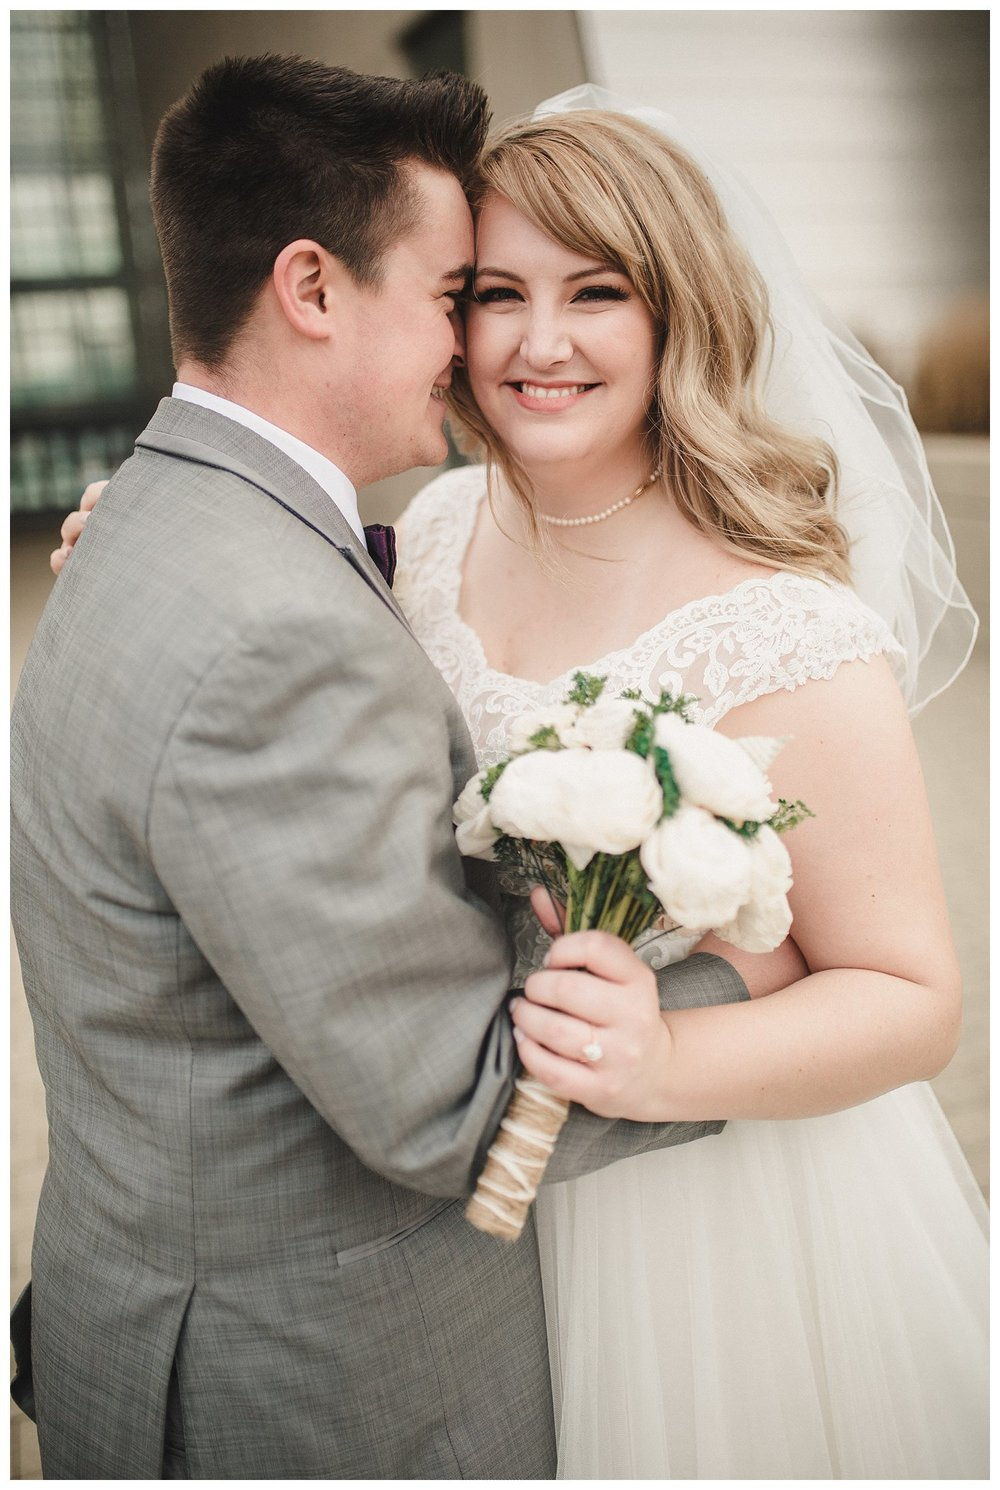 Kelsey_Diane_Photography_Loose_Mansion_Wedding_Photography_Kansas_City_Victor_Lyndsay_0350.jpg